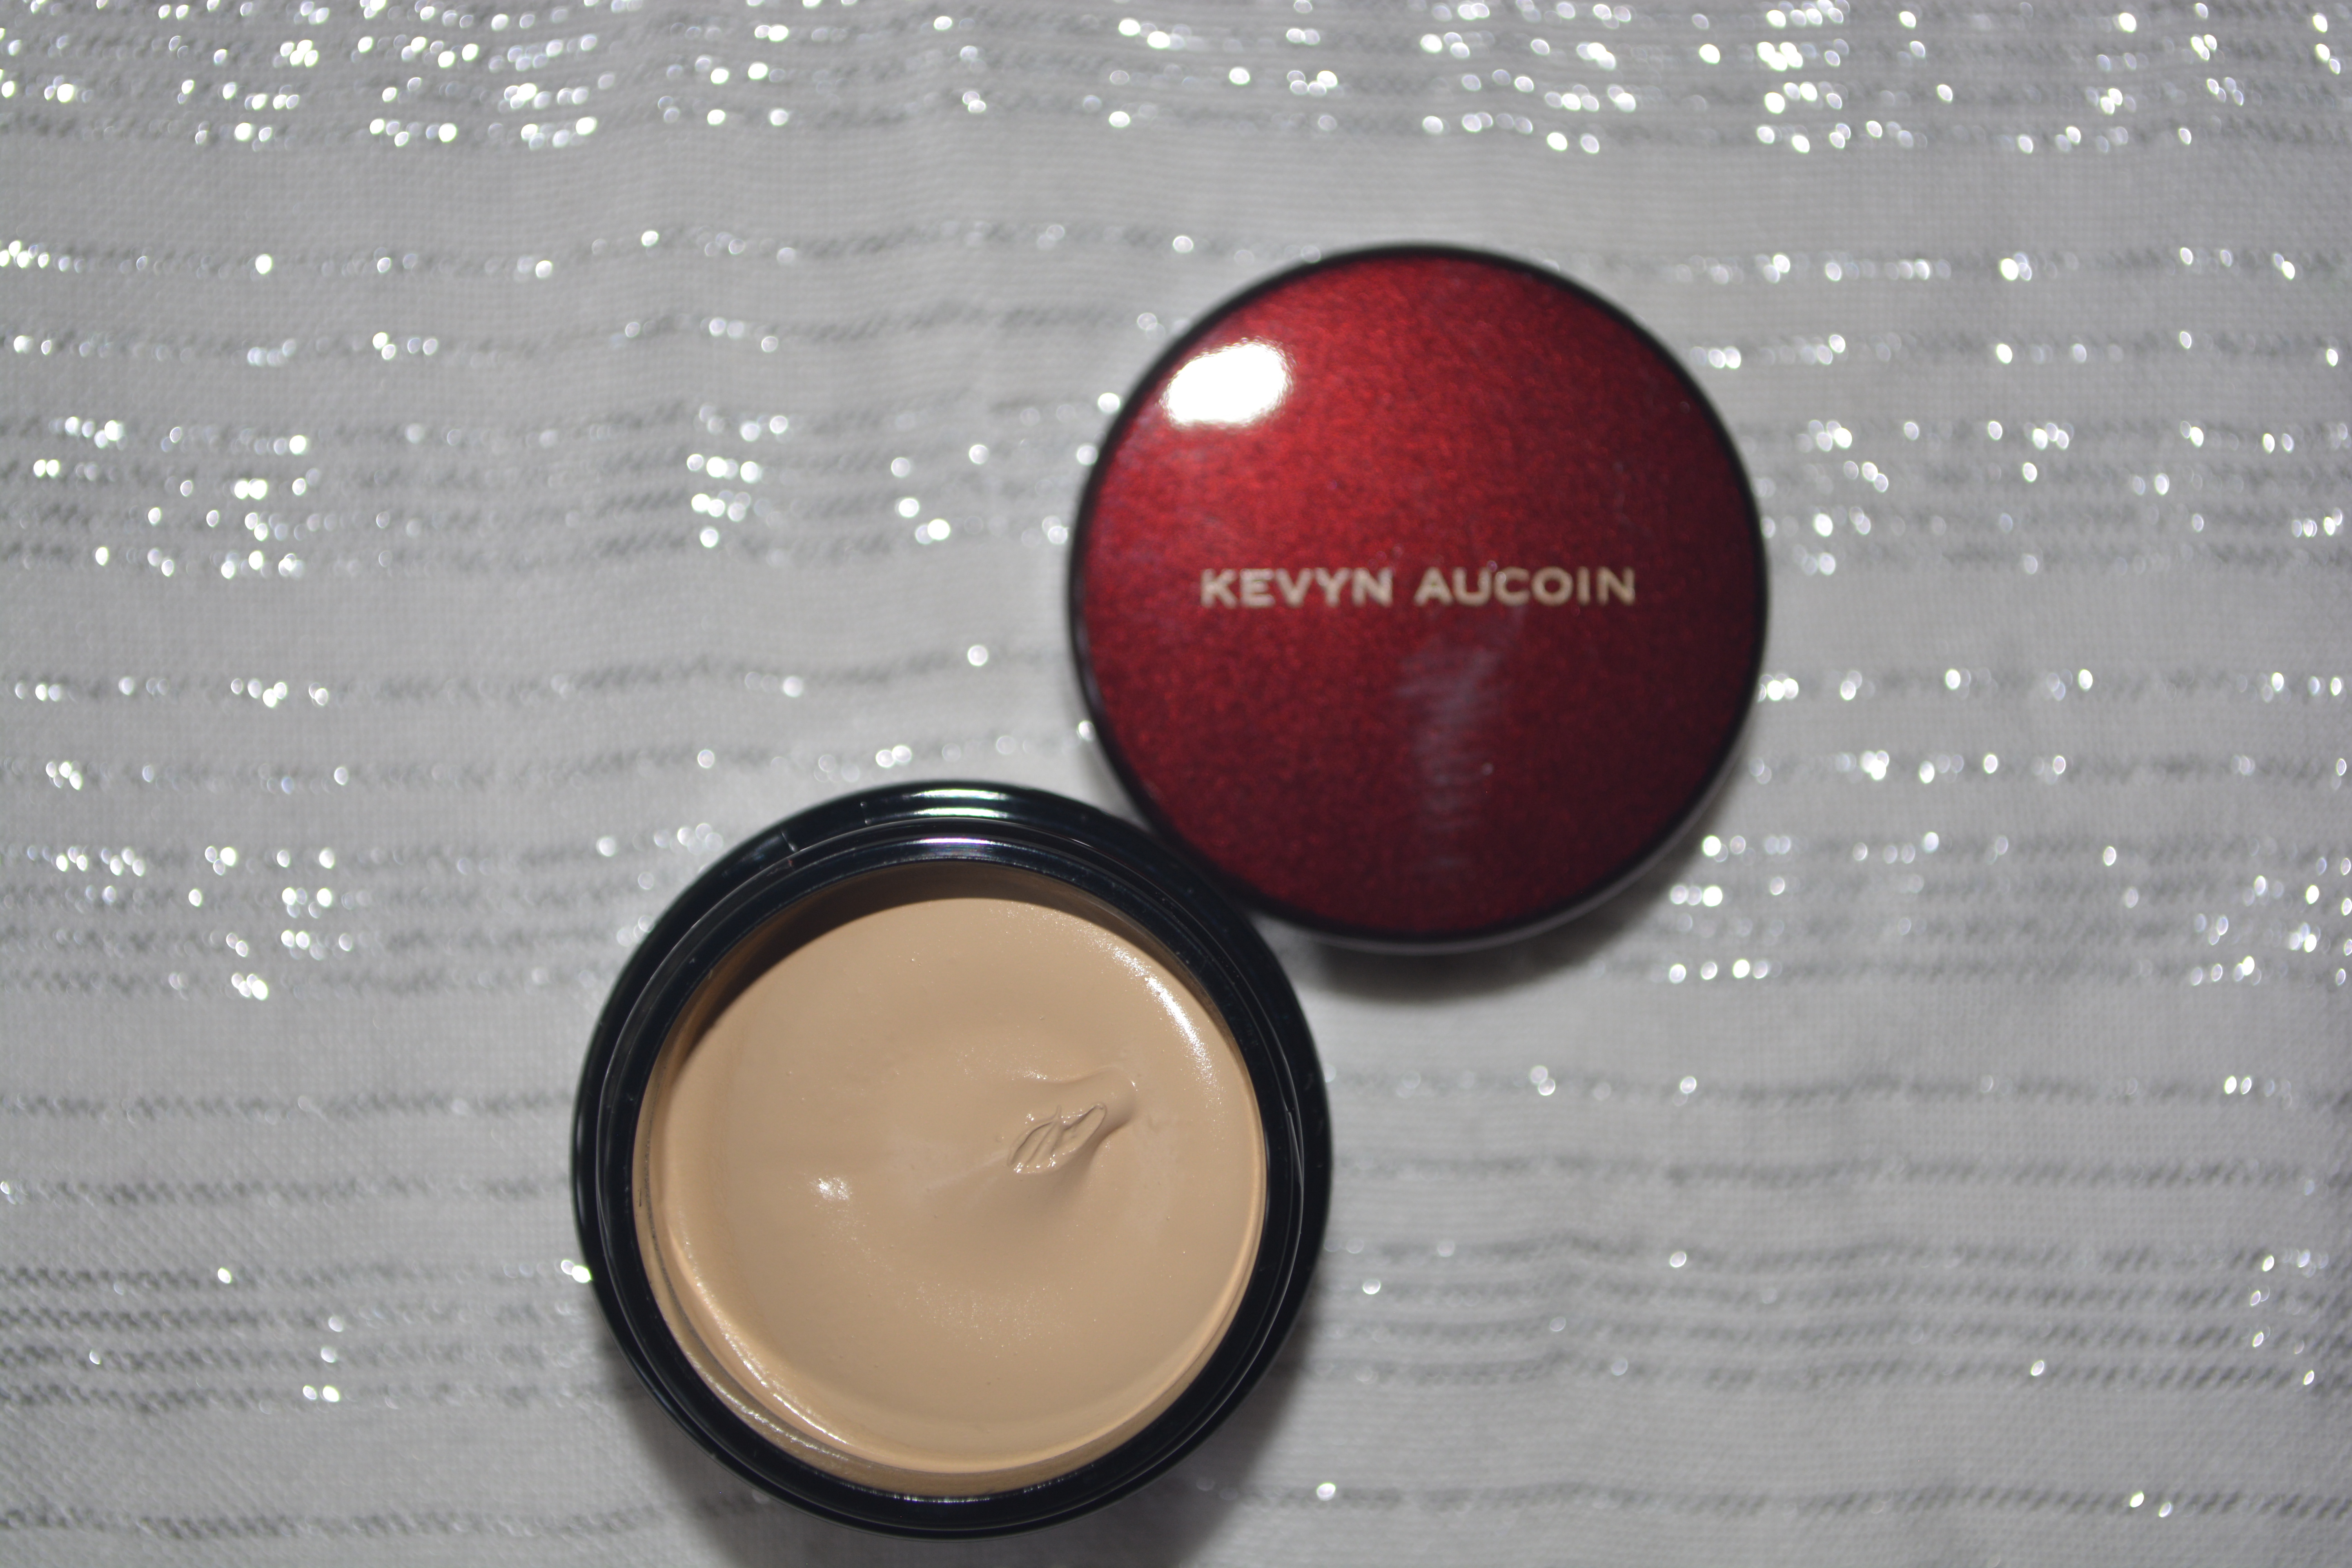 kevyn aucoin sensual skin enhancer shade guide